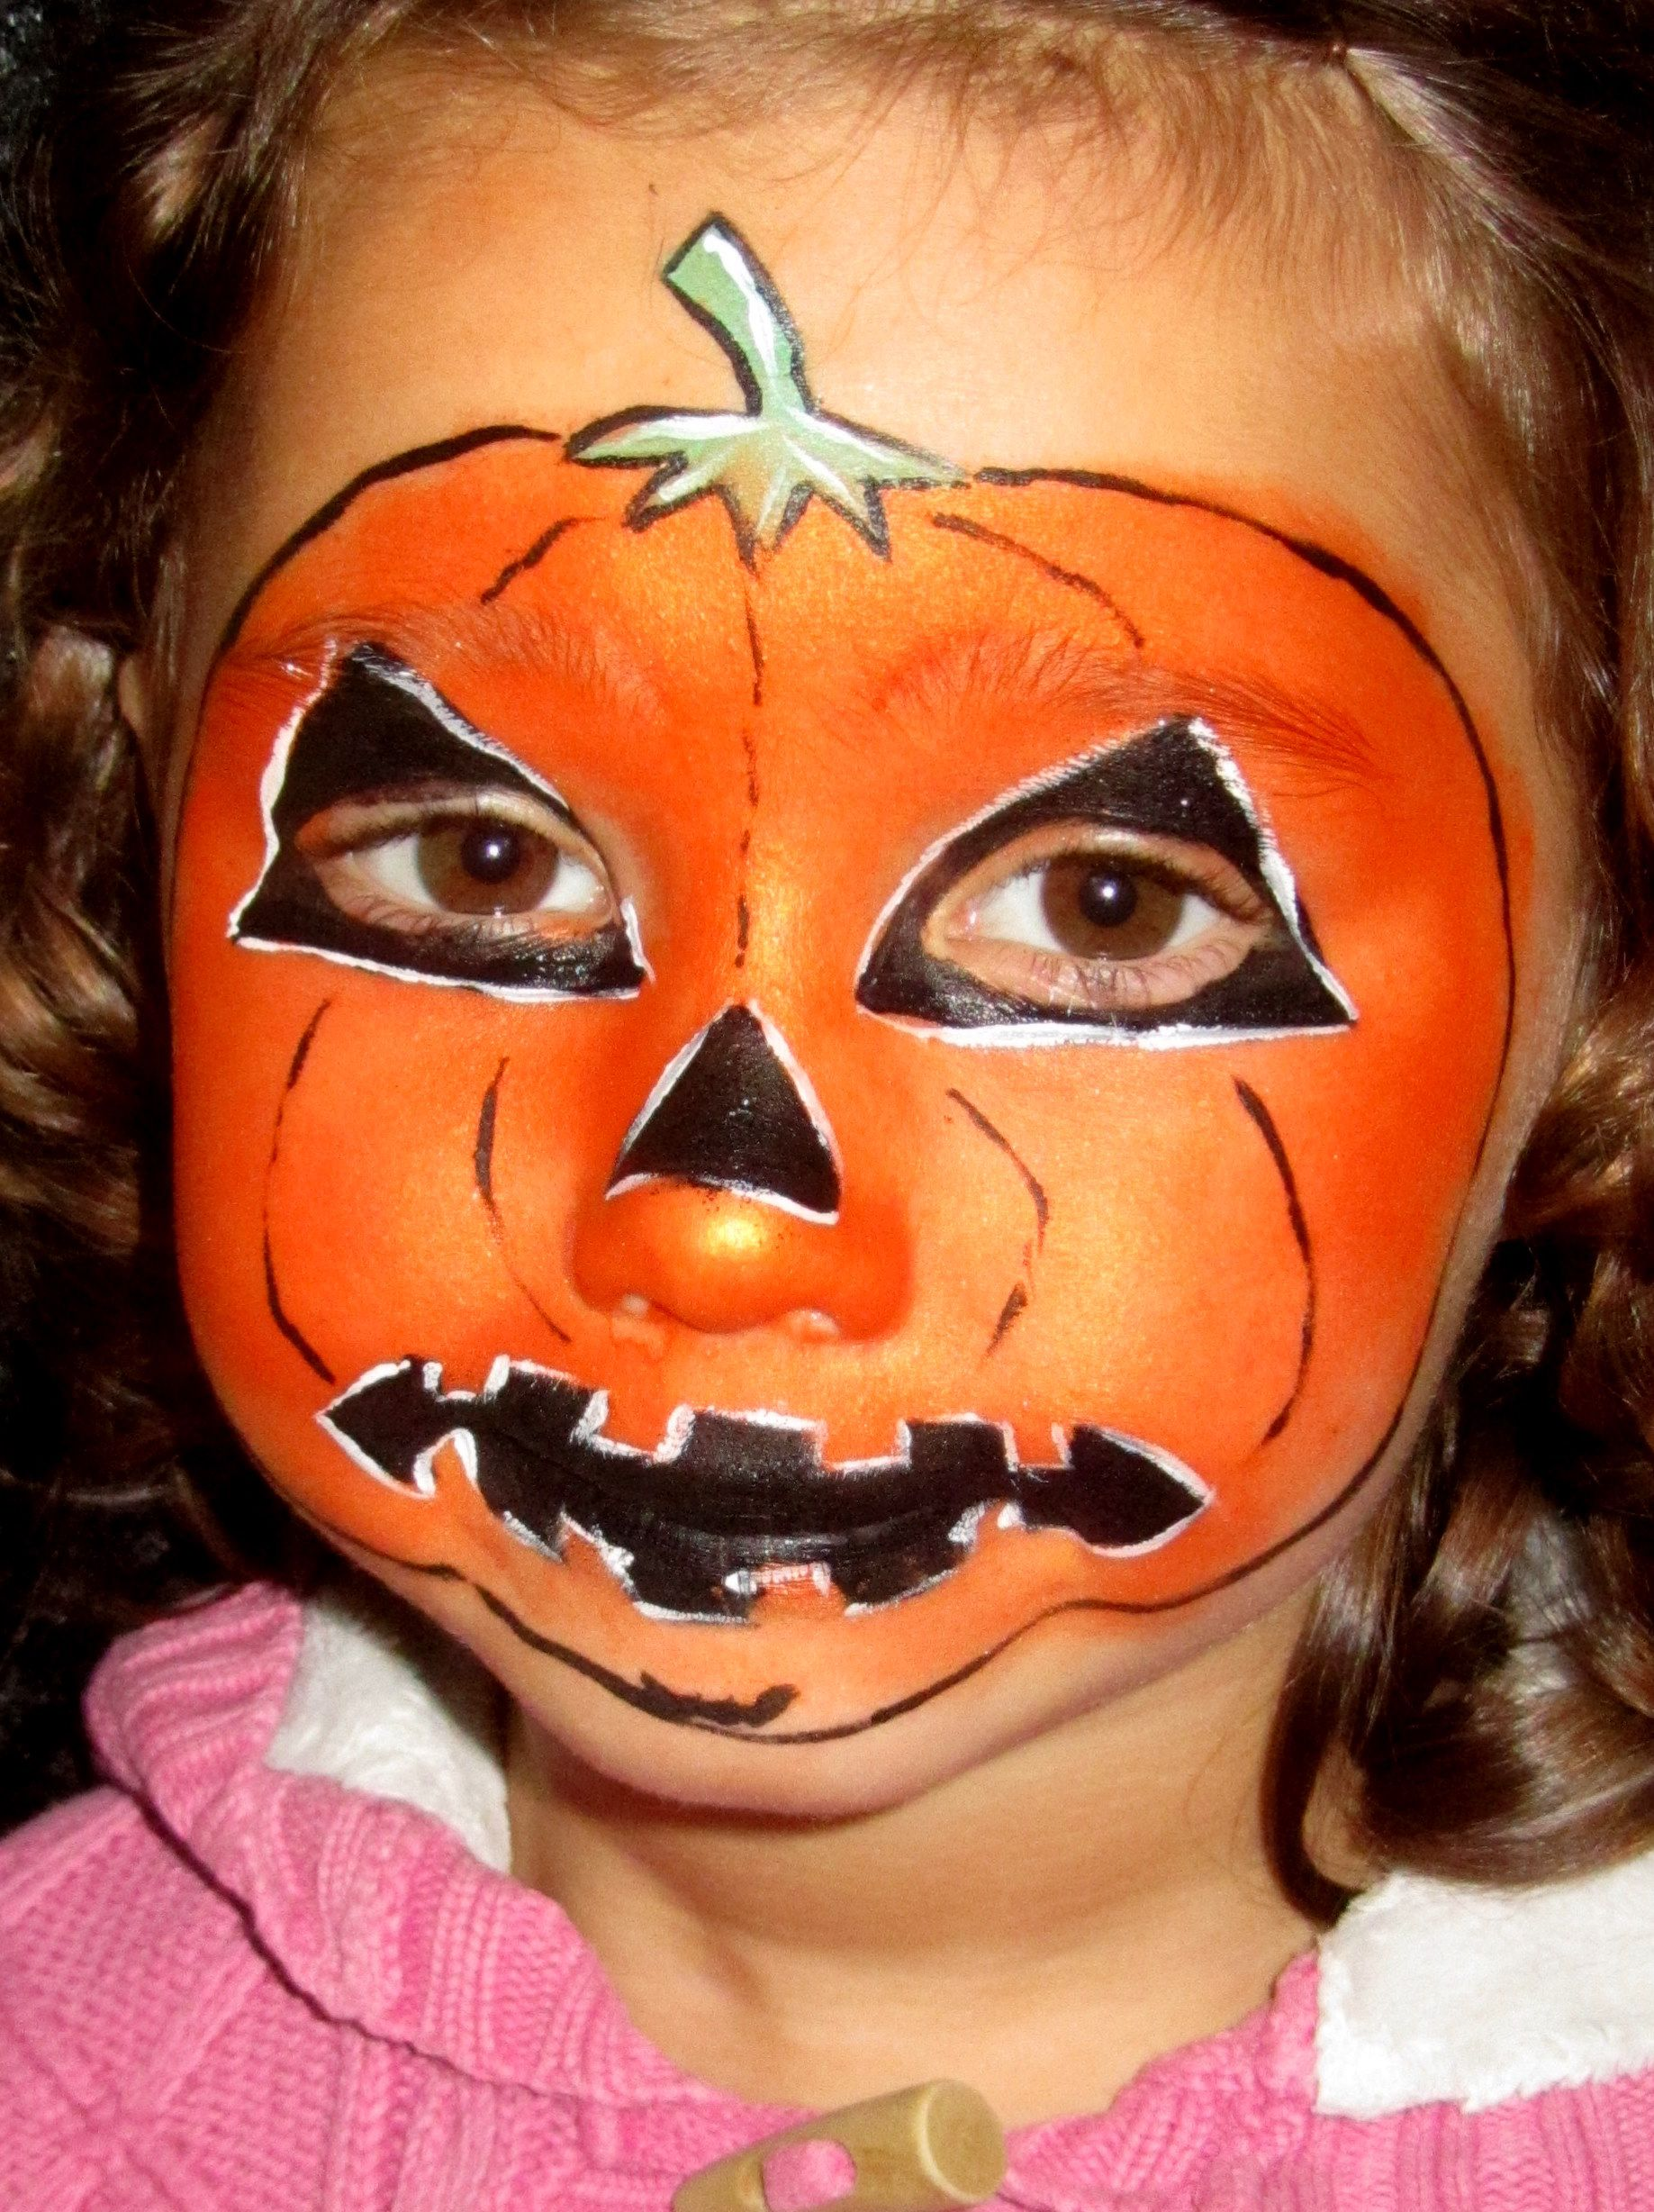 Uncategorized Halloween Face Paint For Kids halloween face paint design ideas celebration celebration